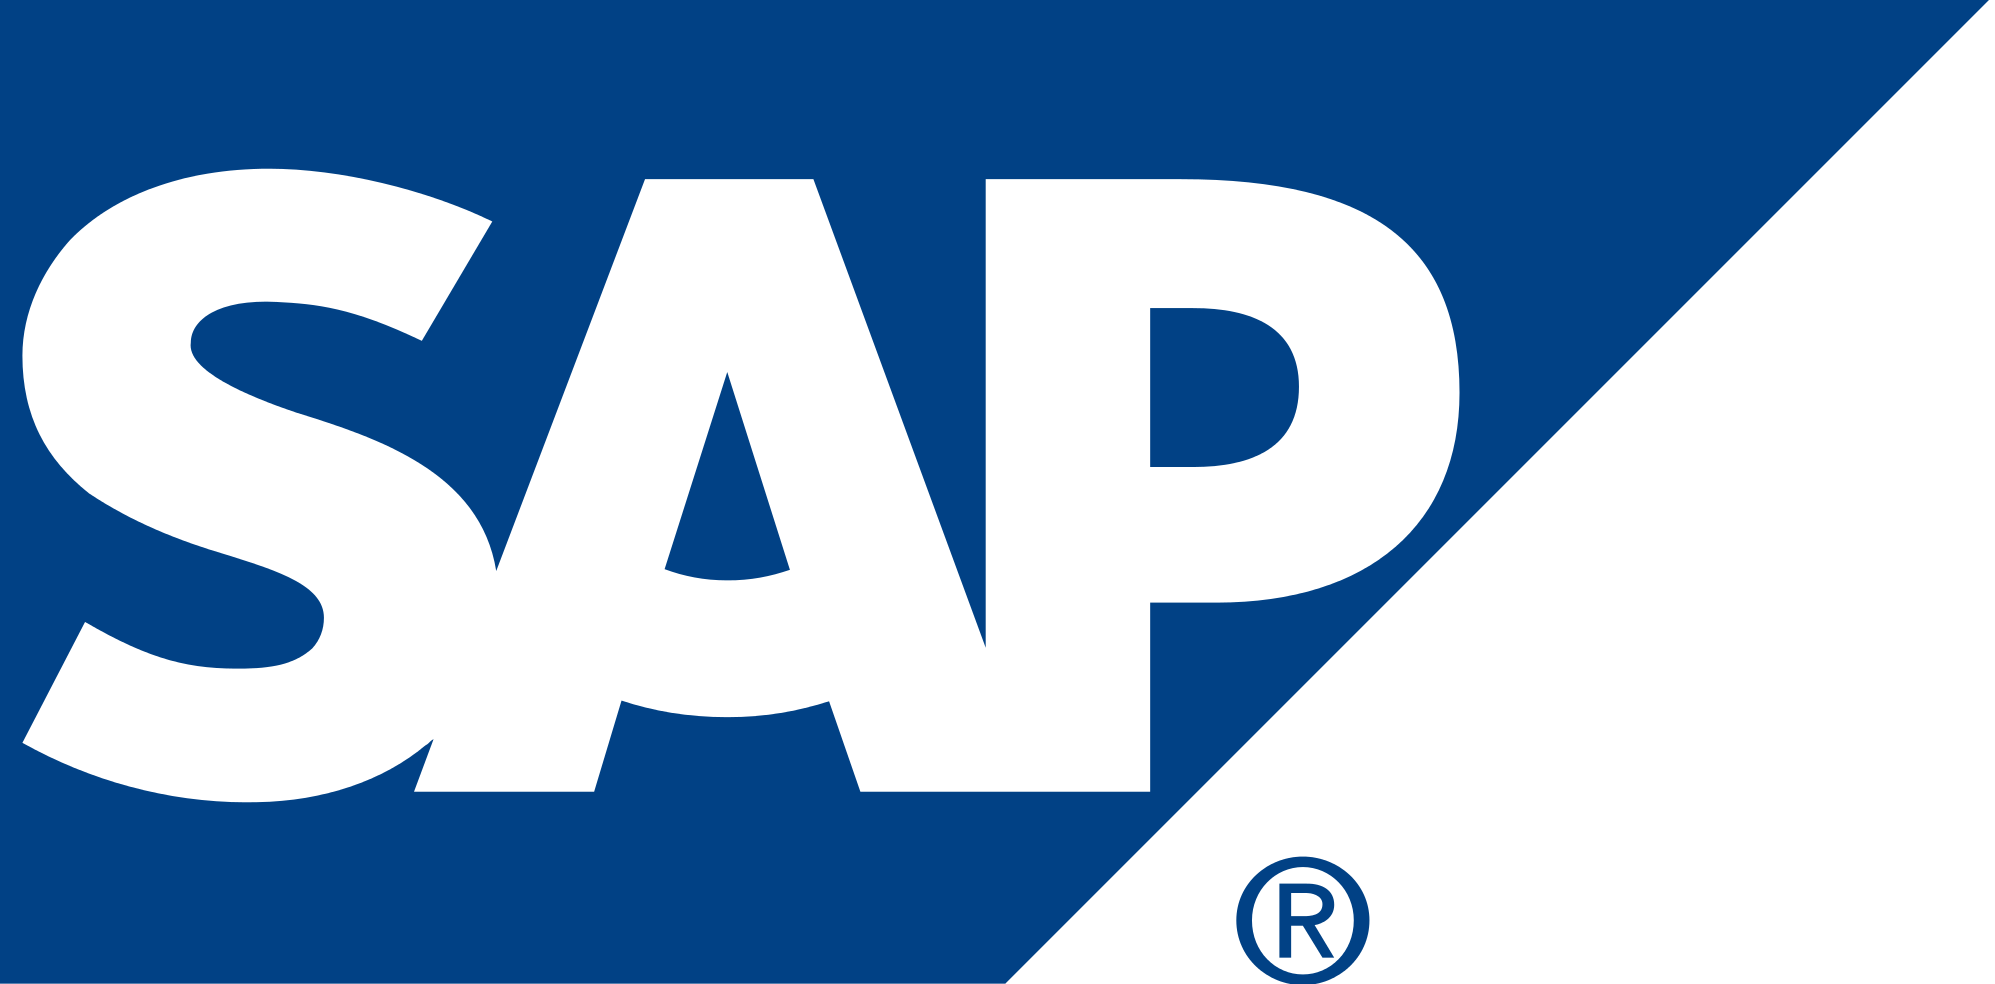 Finding SAP Candidates: Boolean search string examples